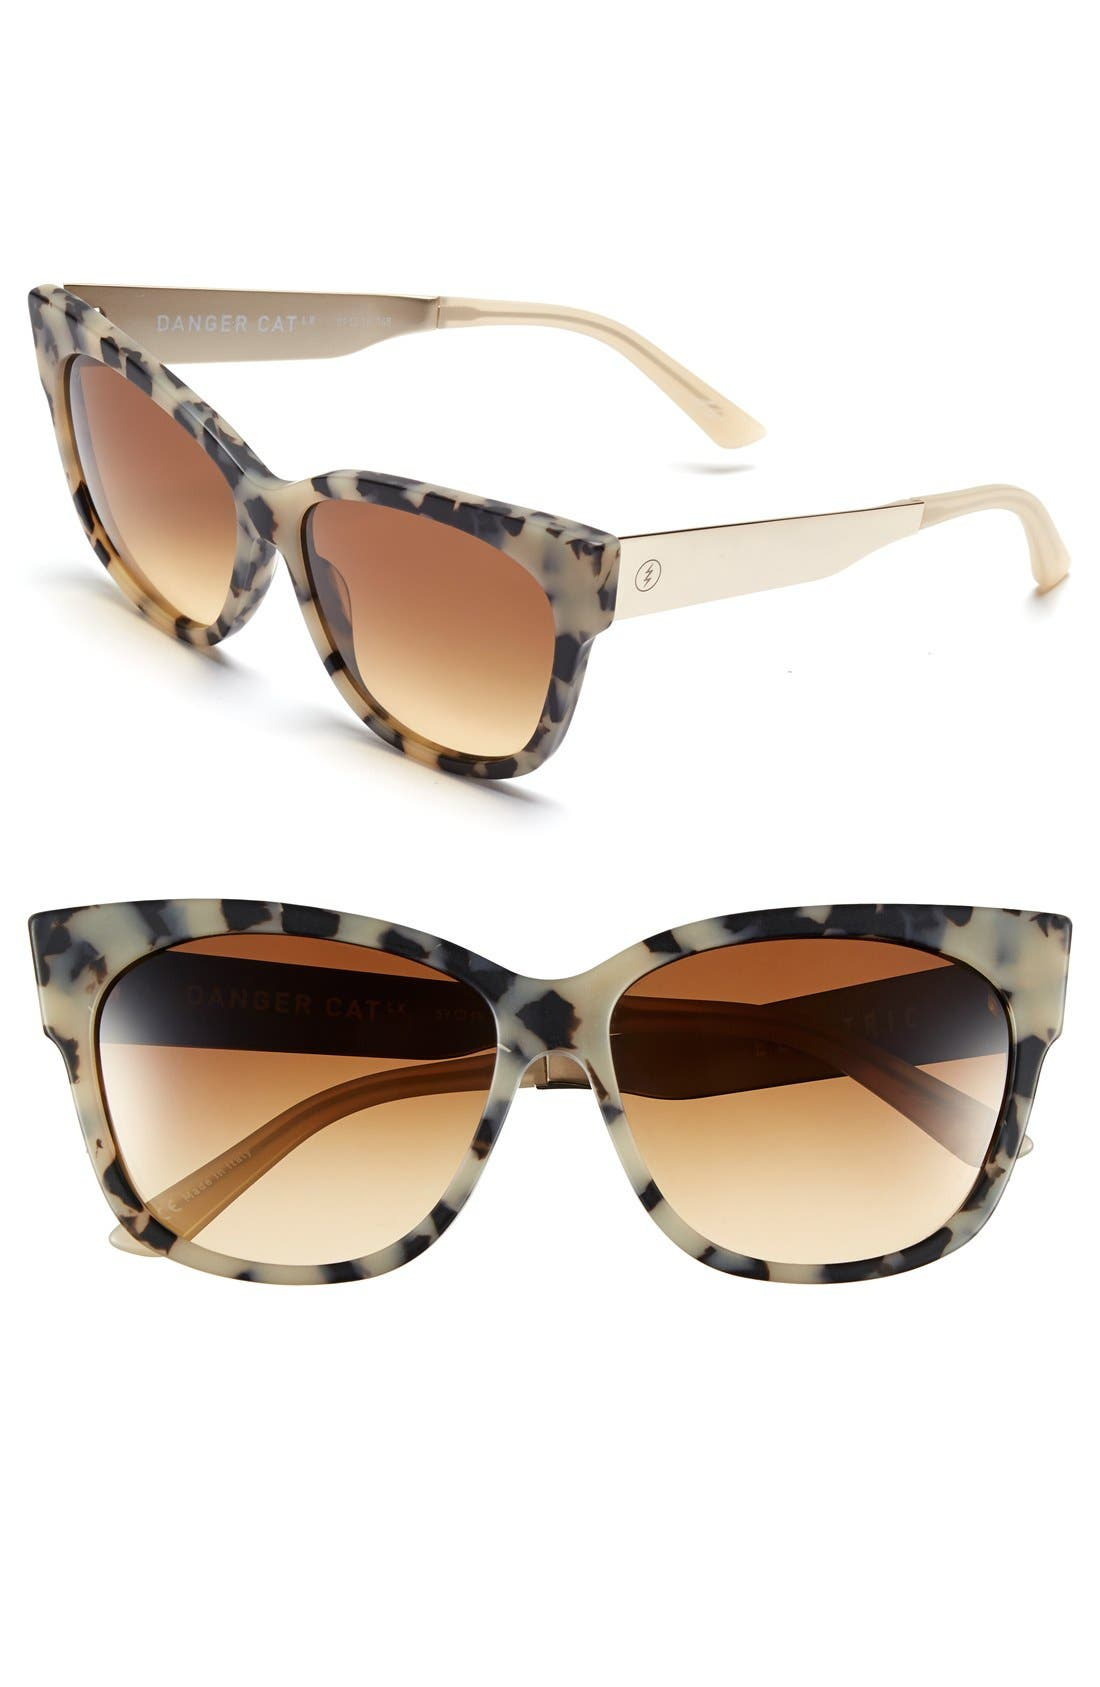 'Danger Cat LX' 59mm Cat Eye Sunglasses,                             Main thumbnail 1, color,                             Matte Nude Tort/ Bronze